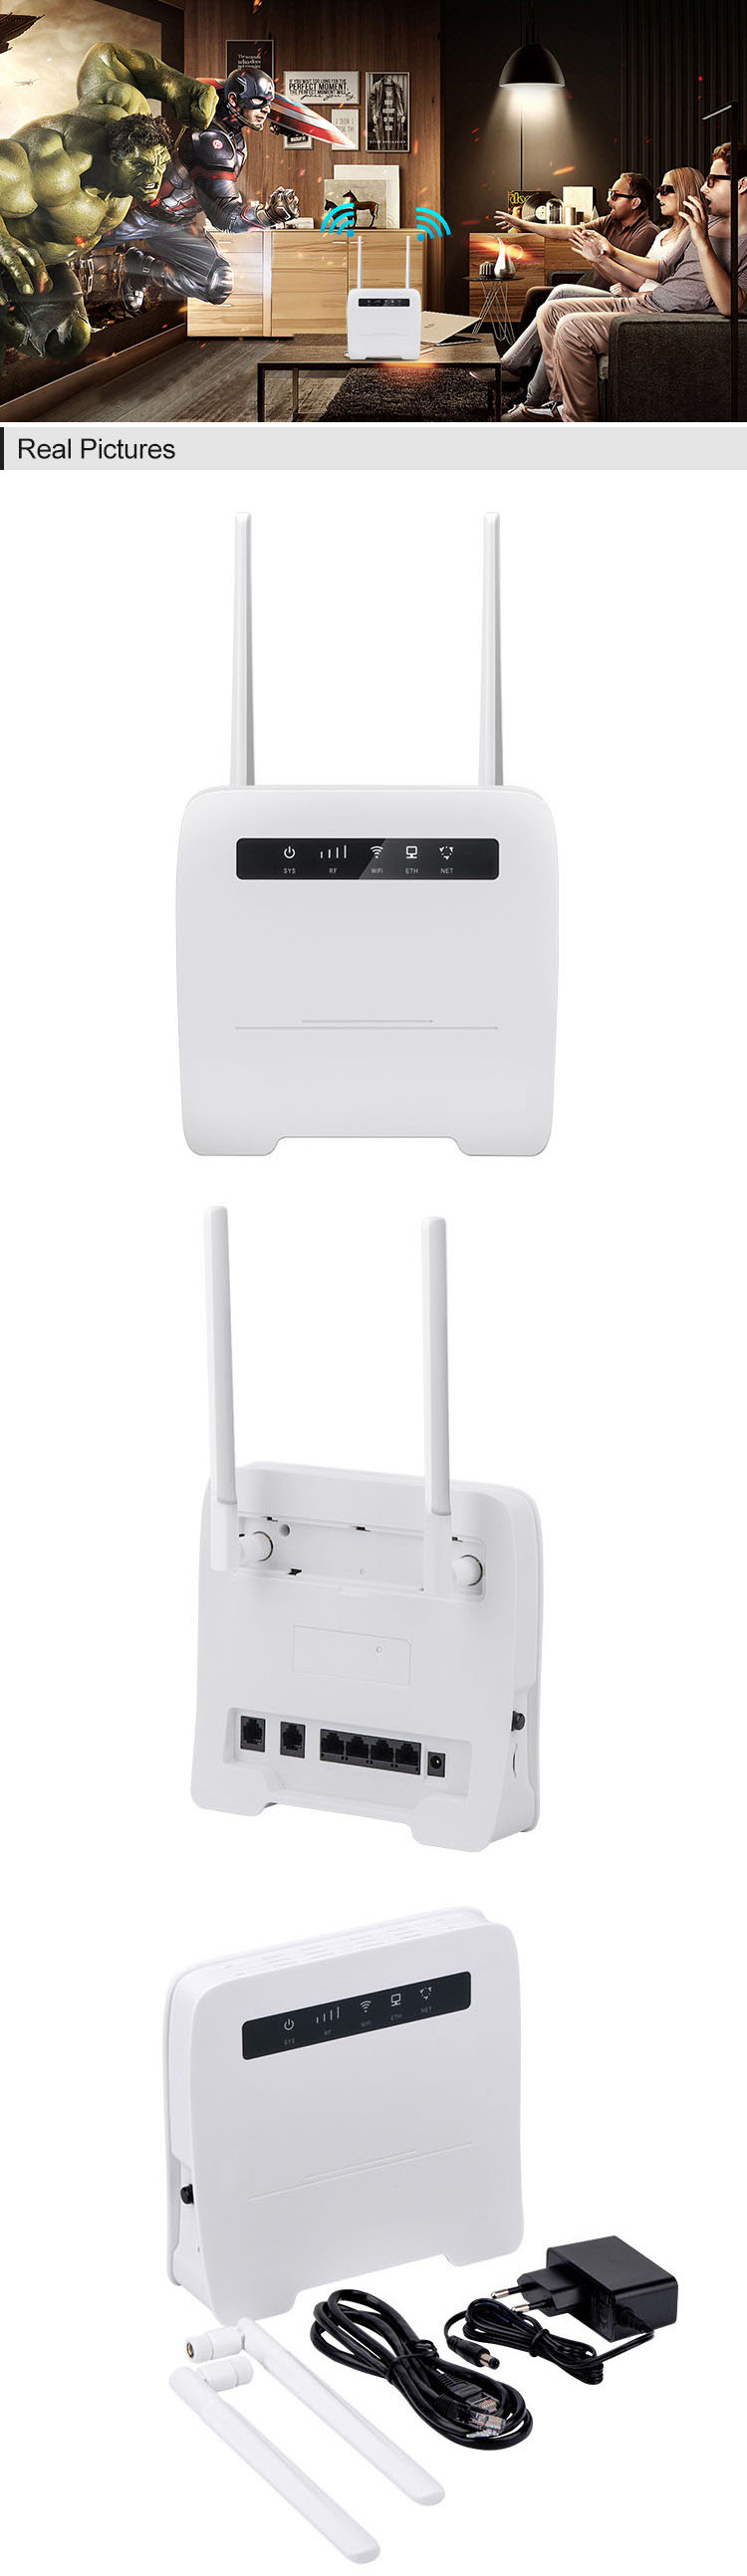 wireless router 3g 4g